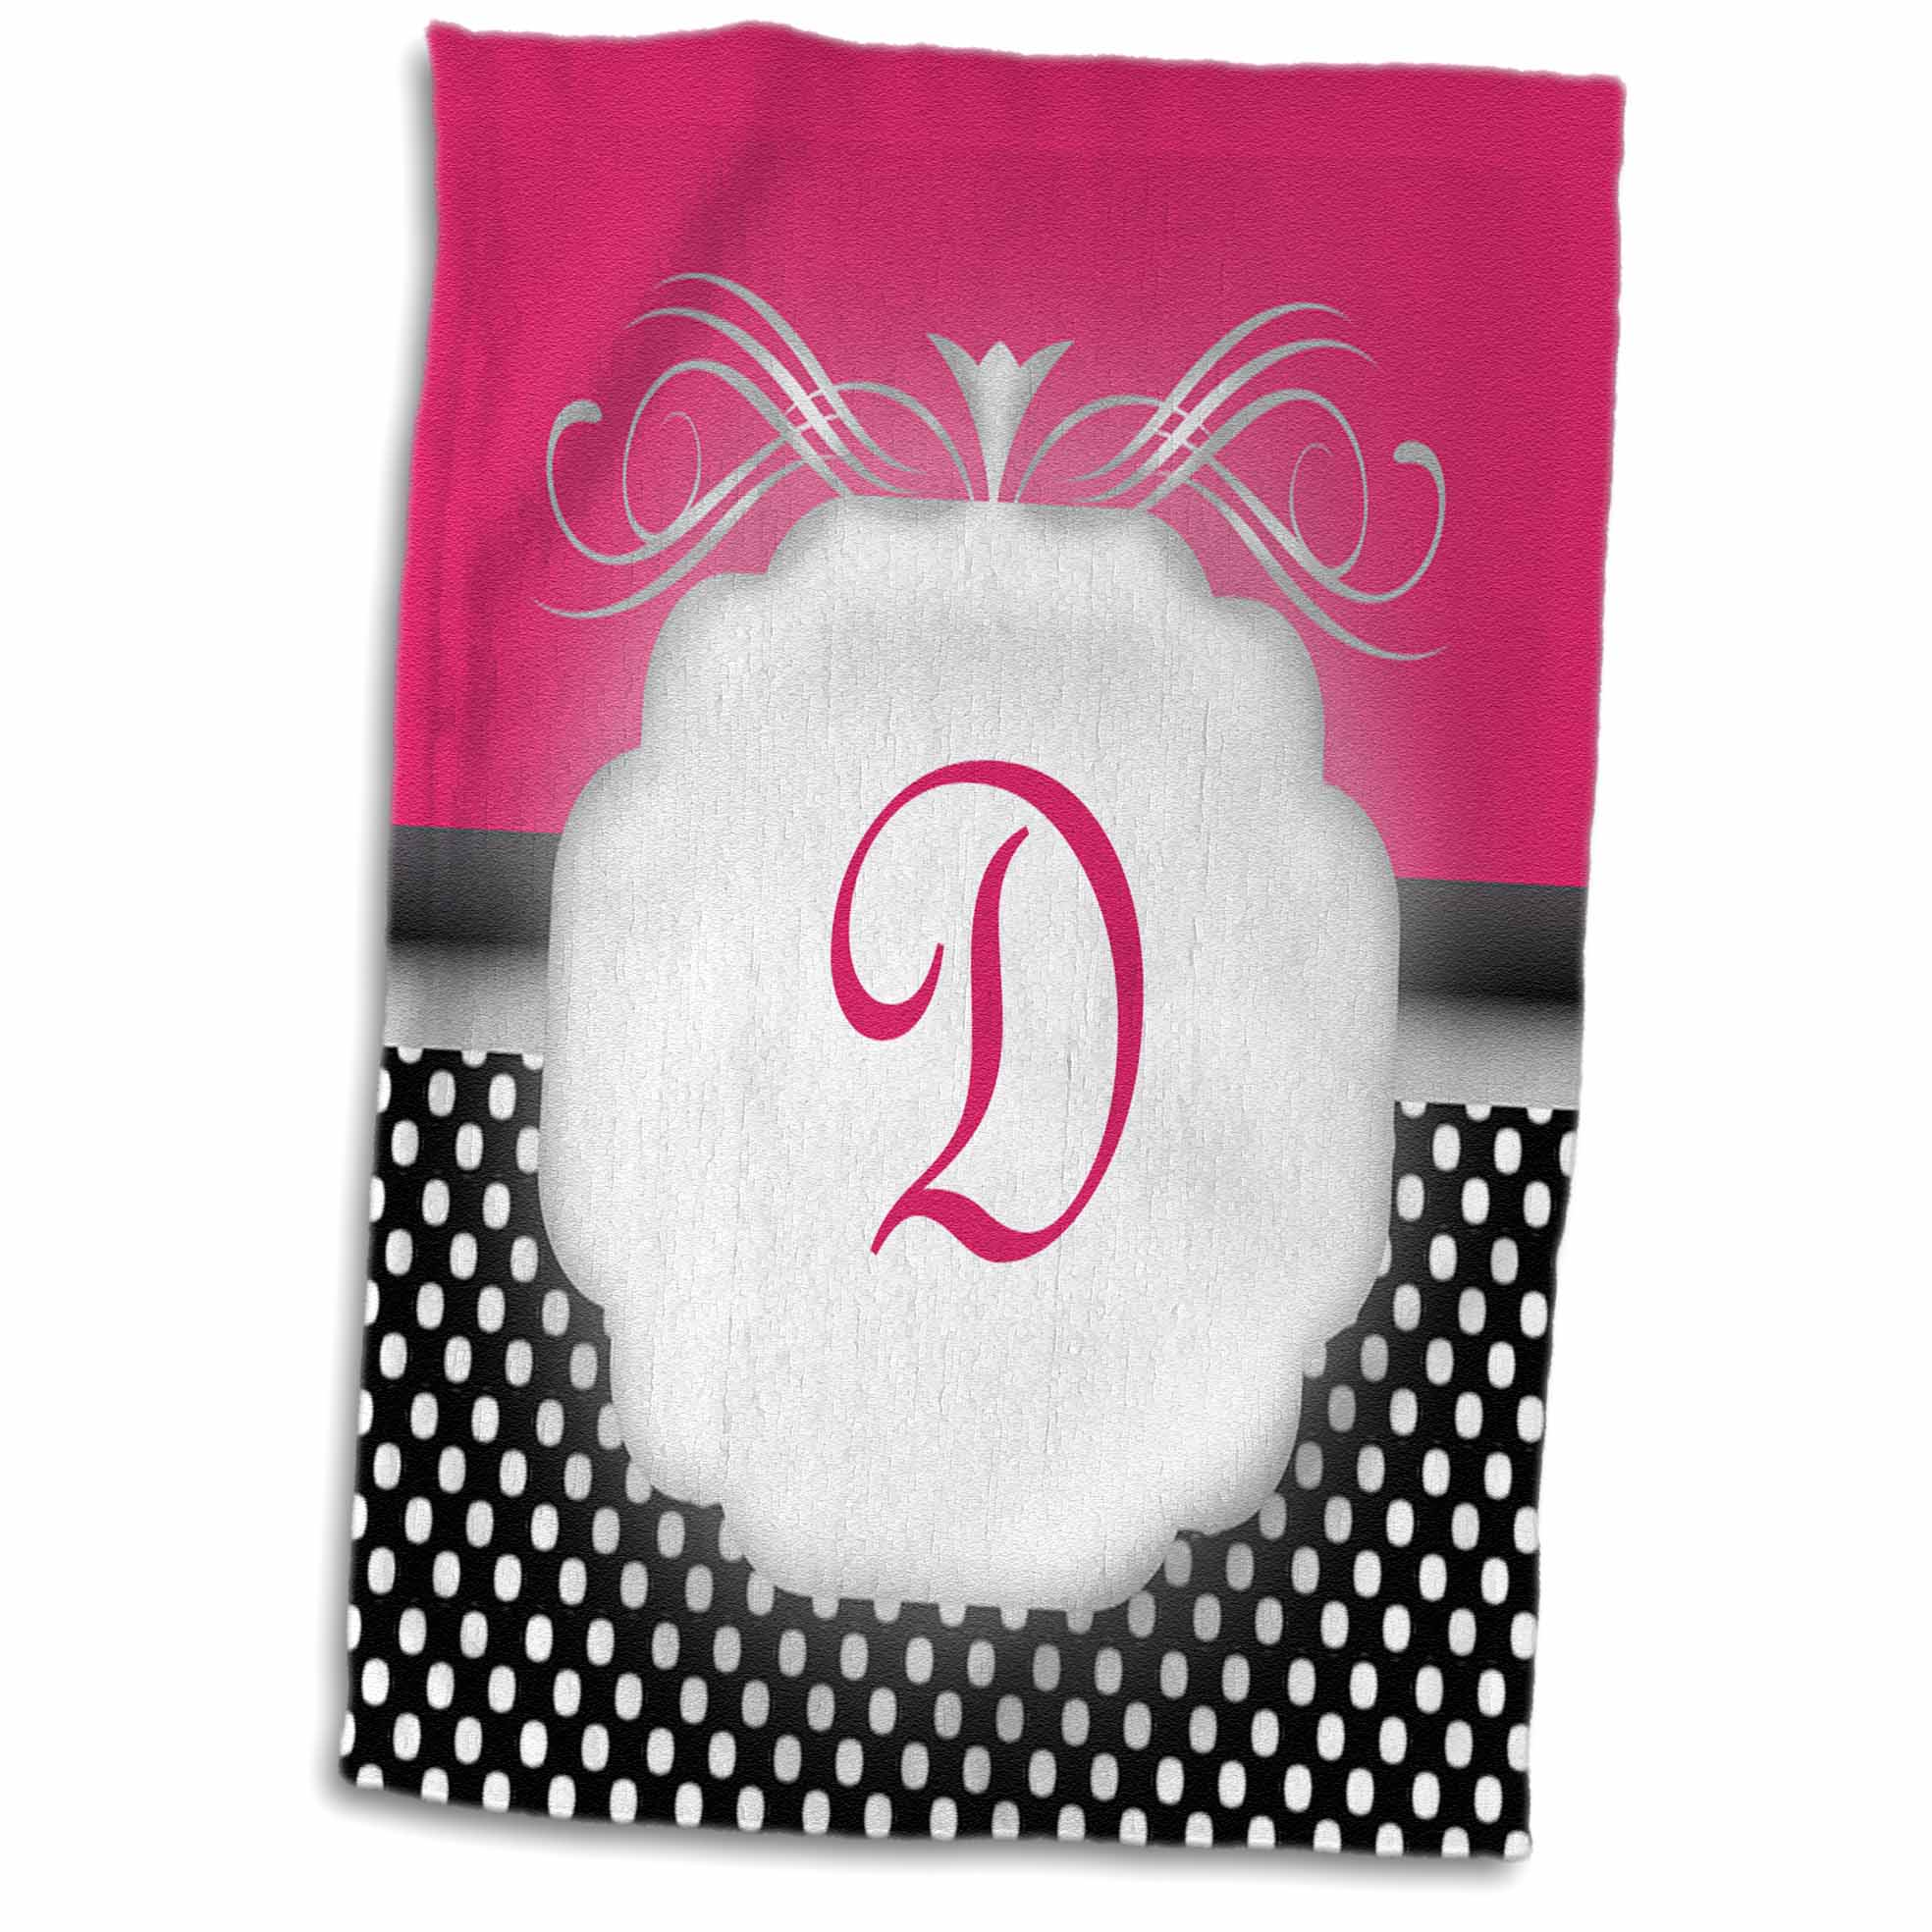 3dRose Elegant Pink with Black and White Polka Dot Monogram Letter D - Towel, 15 by 22-inch